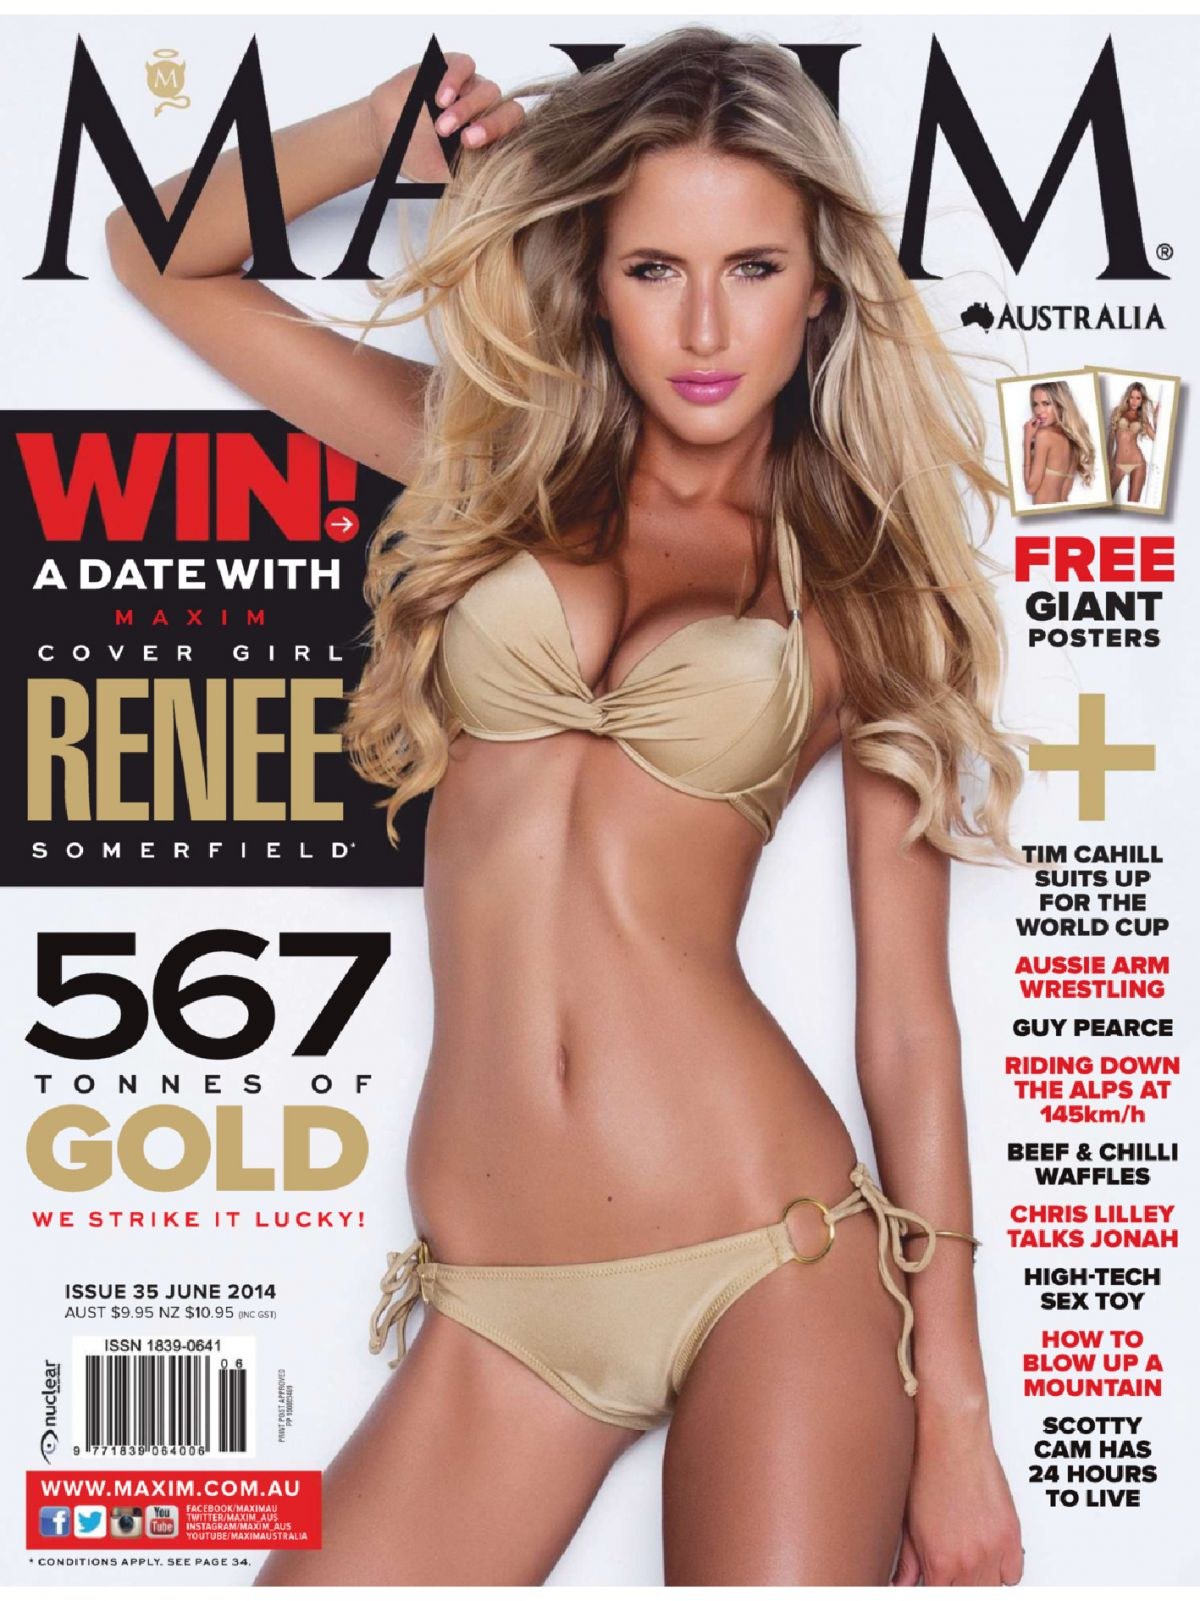 RENEE SOMERFIELD in Maxim Magazine, June 2014 Issue